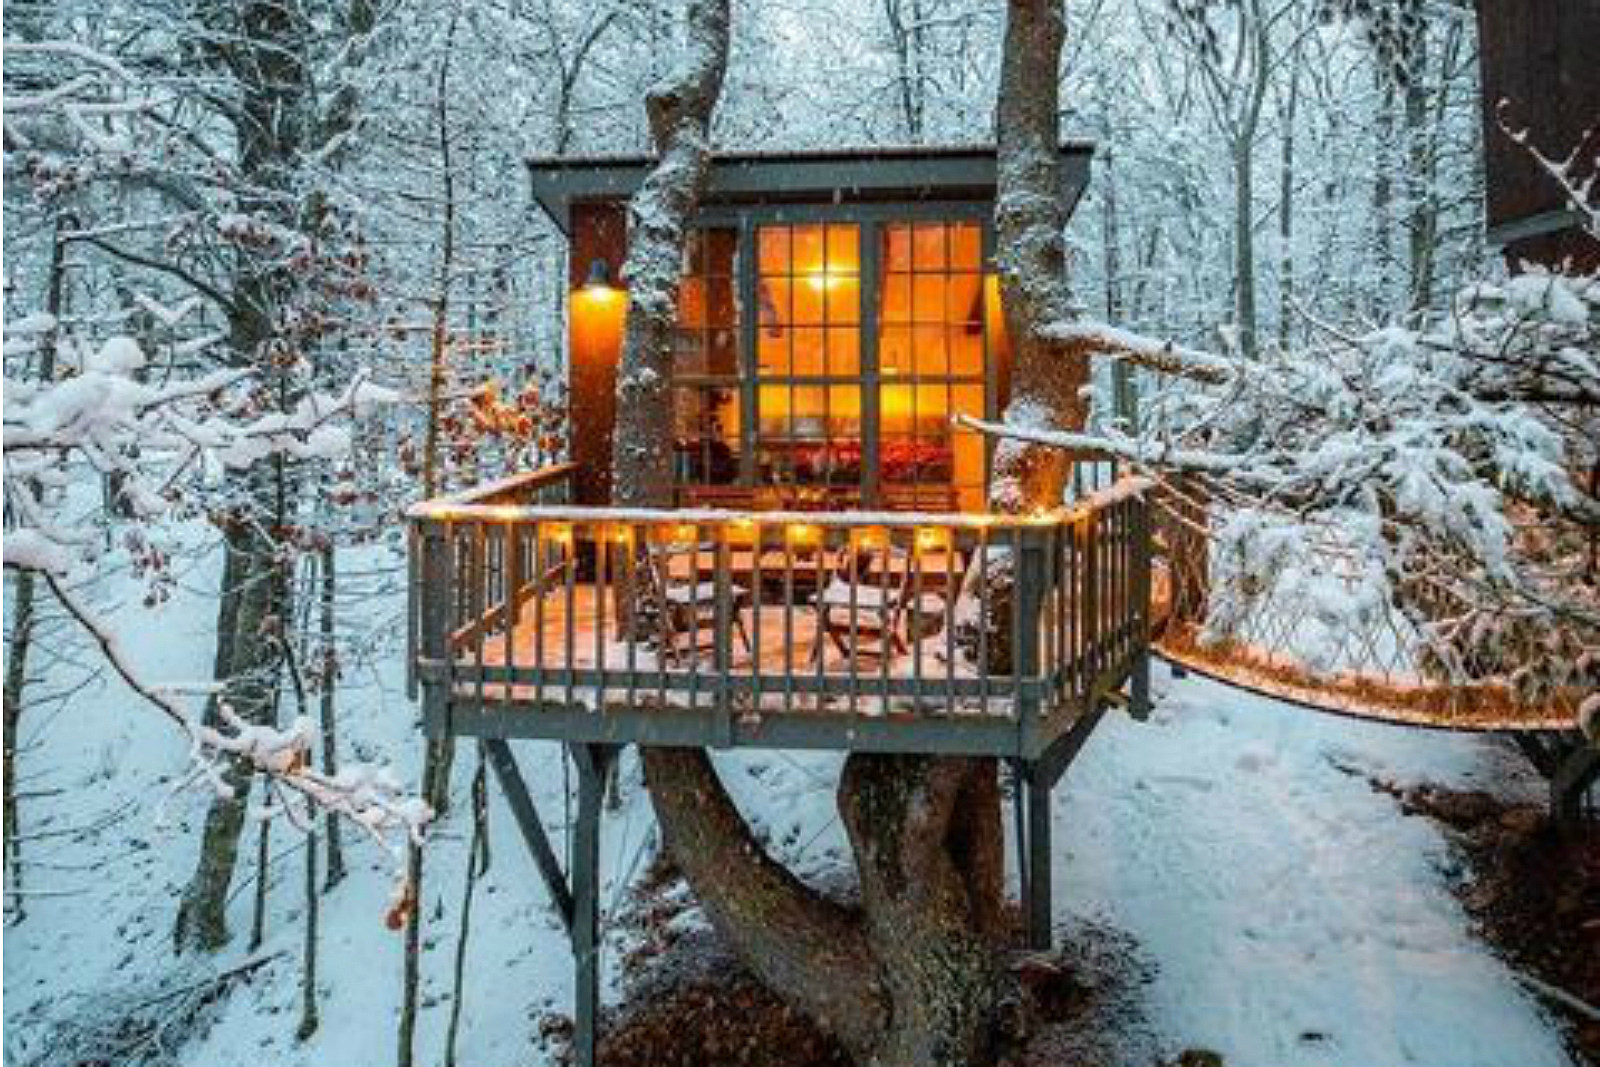 Escape A Tree This Georgetown Is Me Winter House Magical In